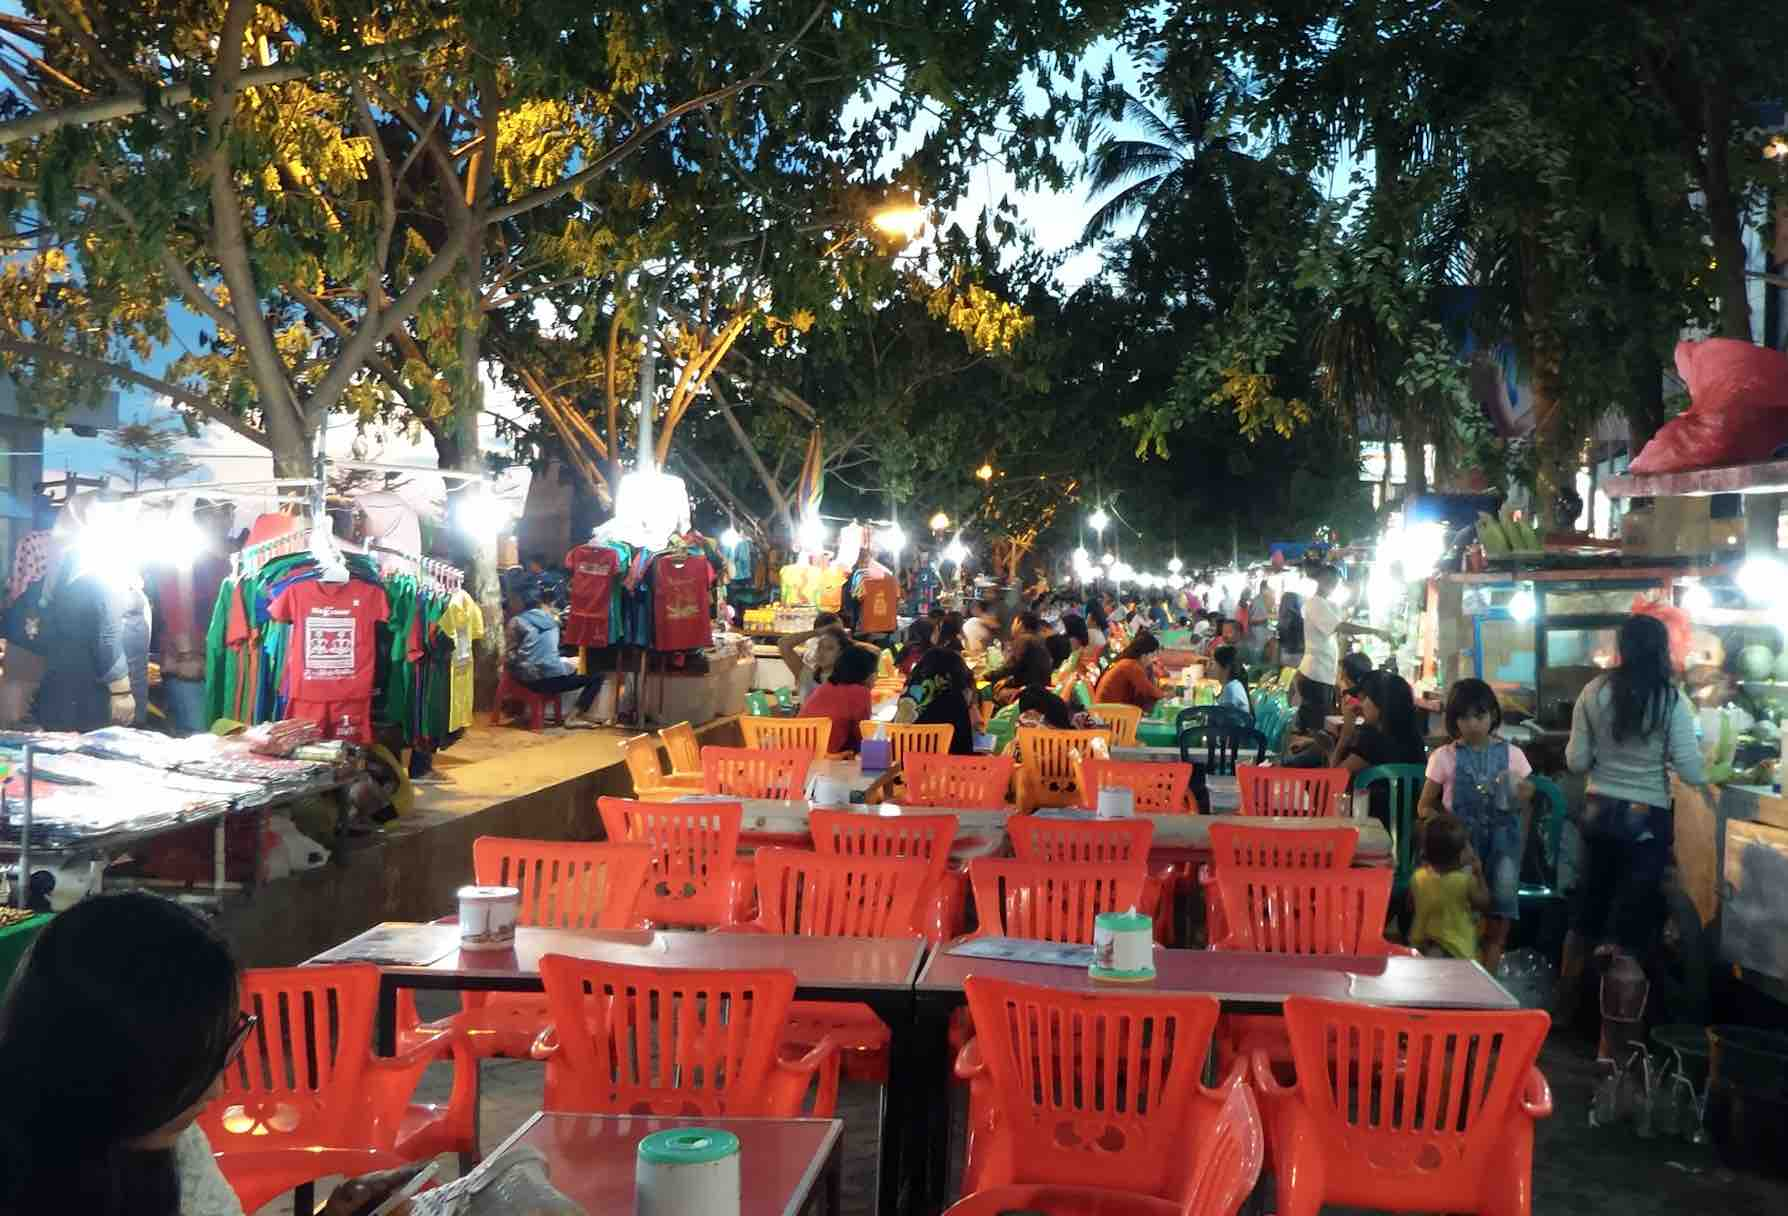 Night Market - AspirantSG